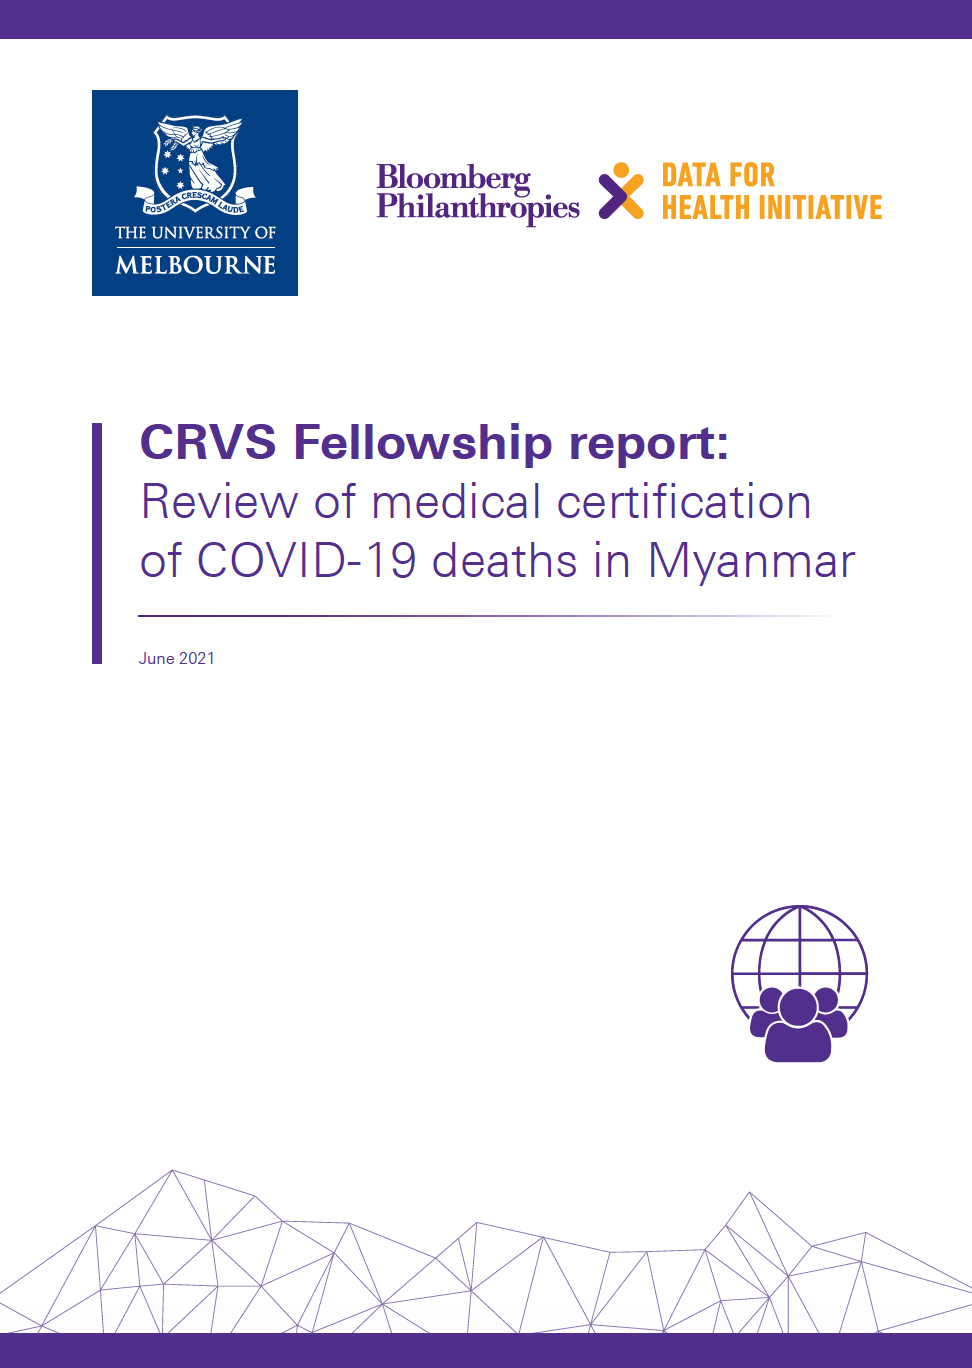 CRVS Fellowship report: Review of medical certification of COVID-19 deaths in Myanmar thumbnail